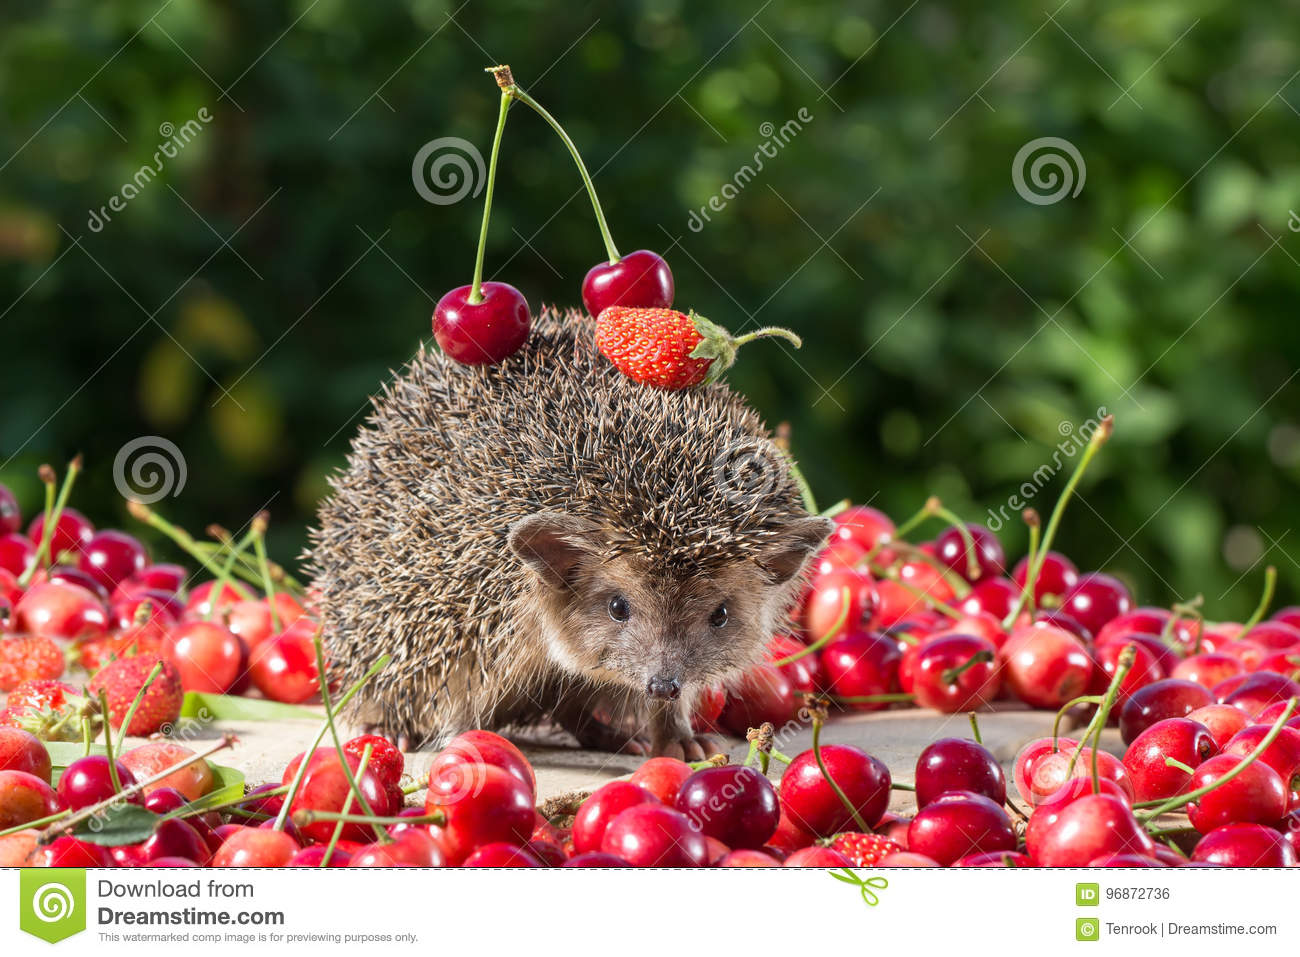 Cute young hedgehog among the berry on green leaves background, carries cherry and strawberry on the back